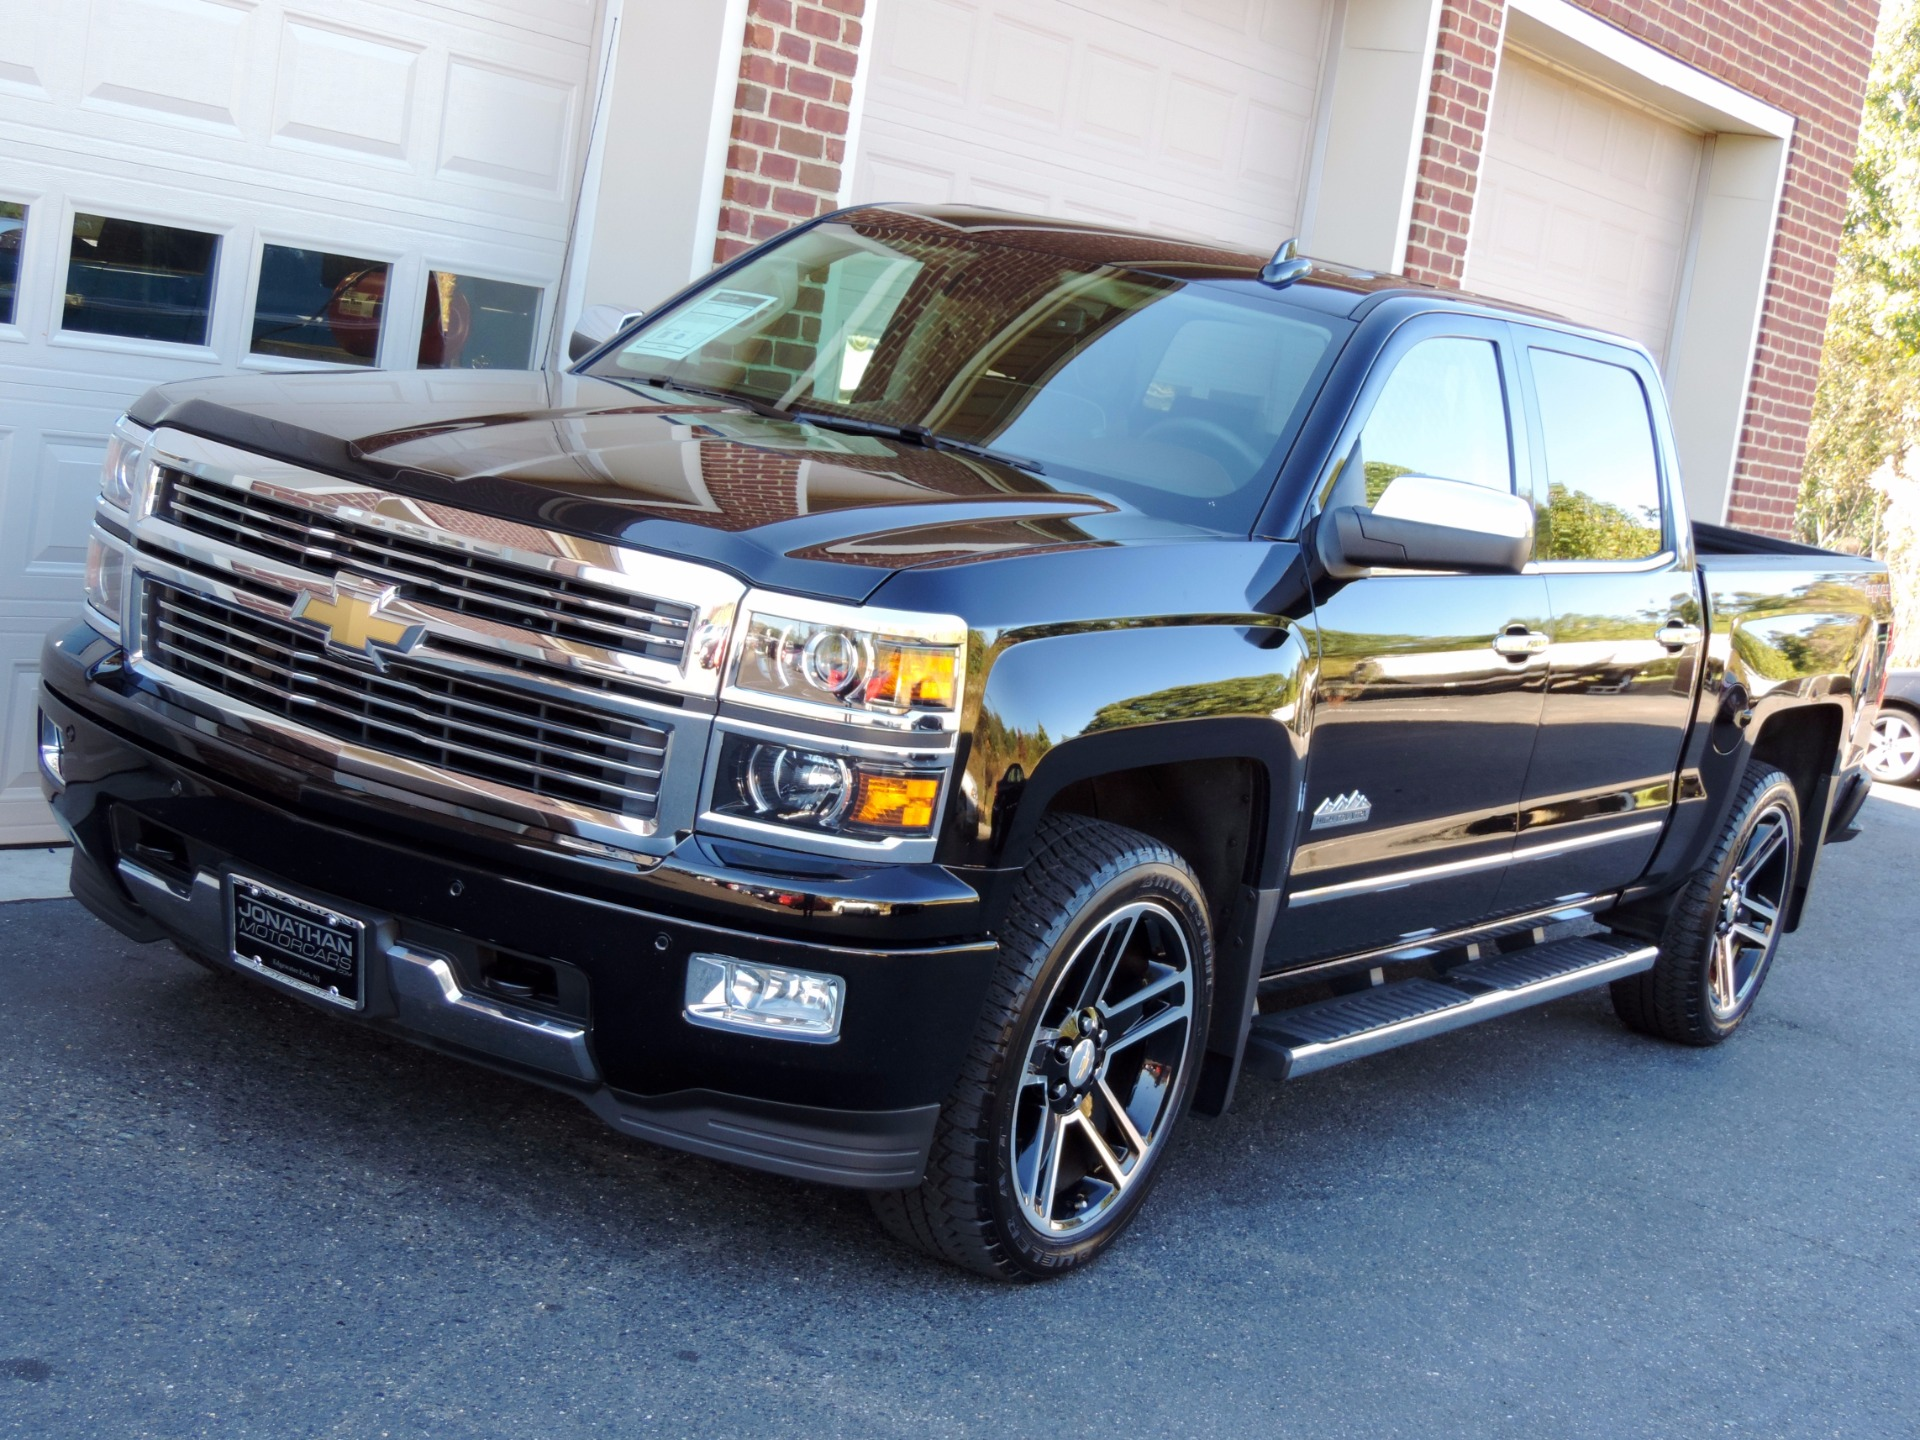 used chevrolet silverado 1500 for sale in mcallen tx autos post. Black Bedroom Furniture Sets. Home Design Ideas